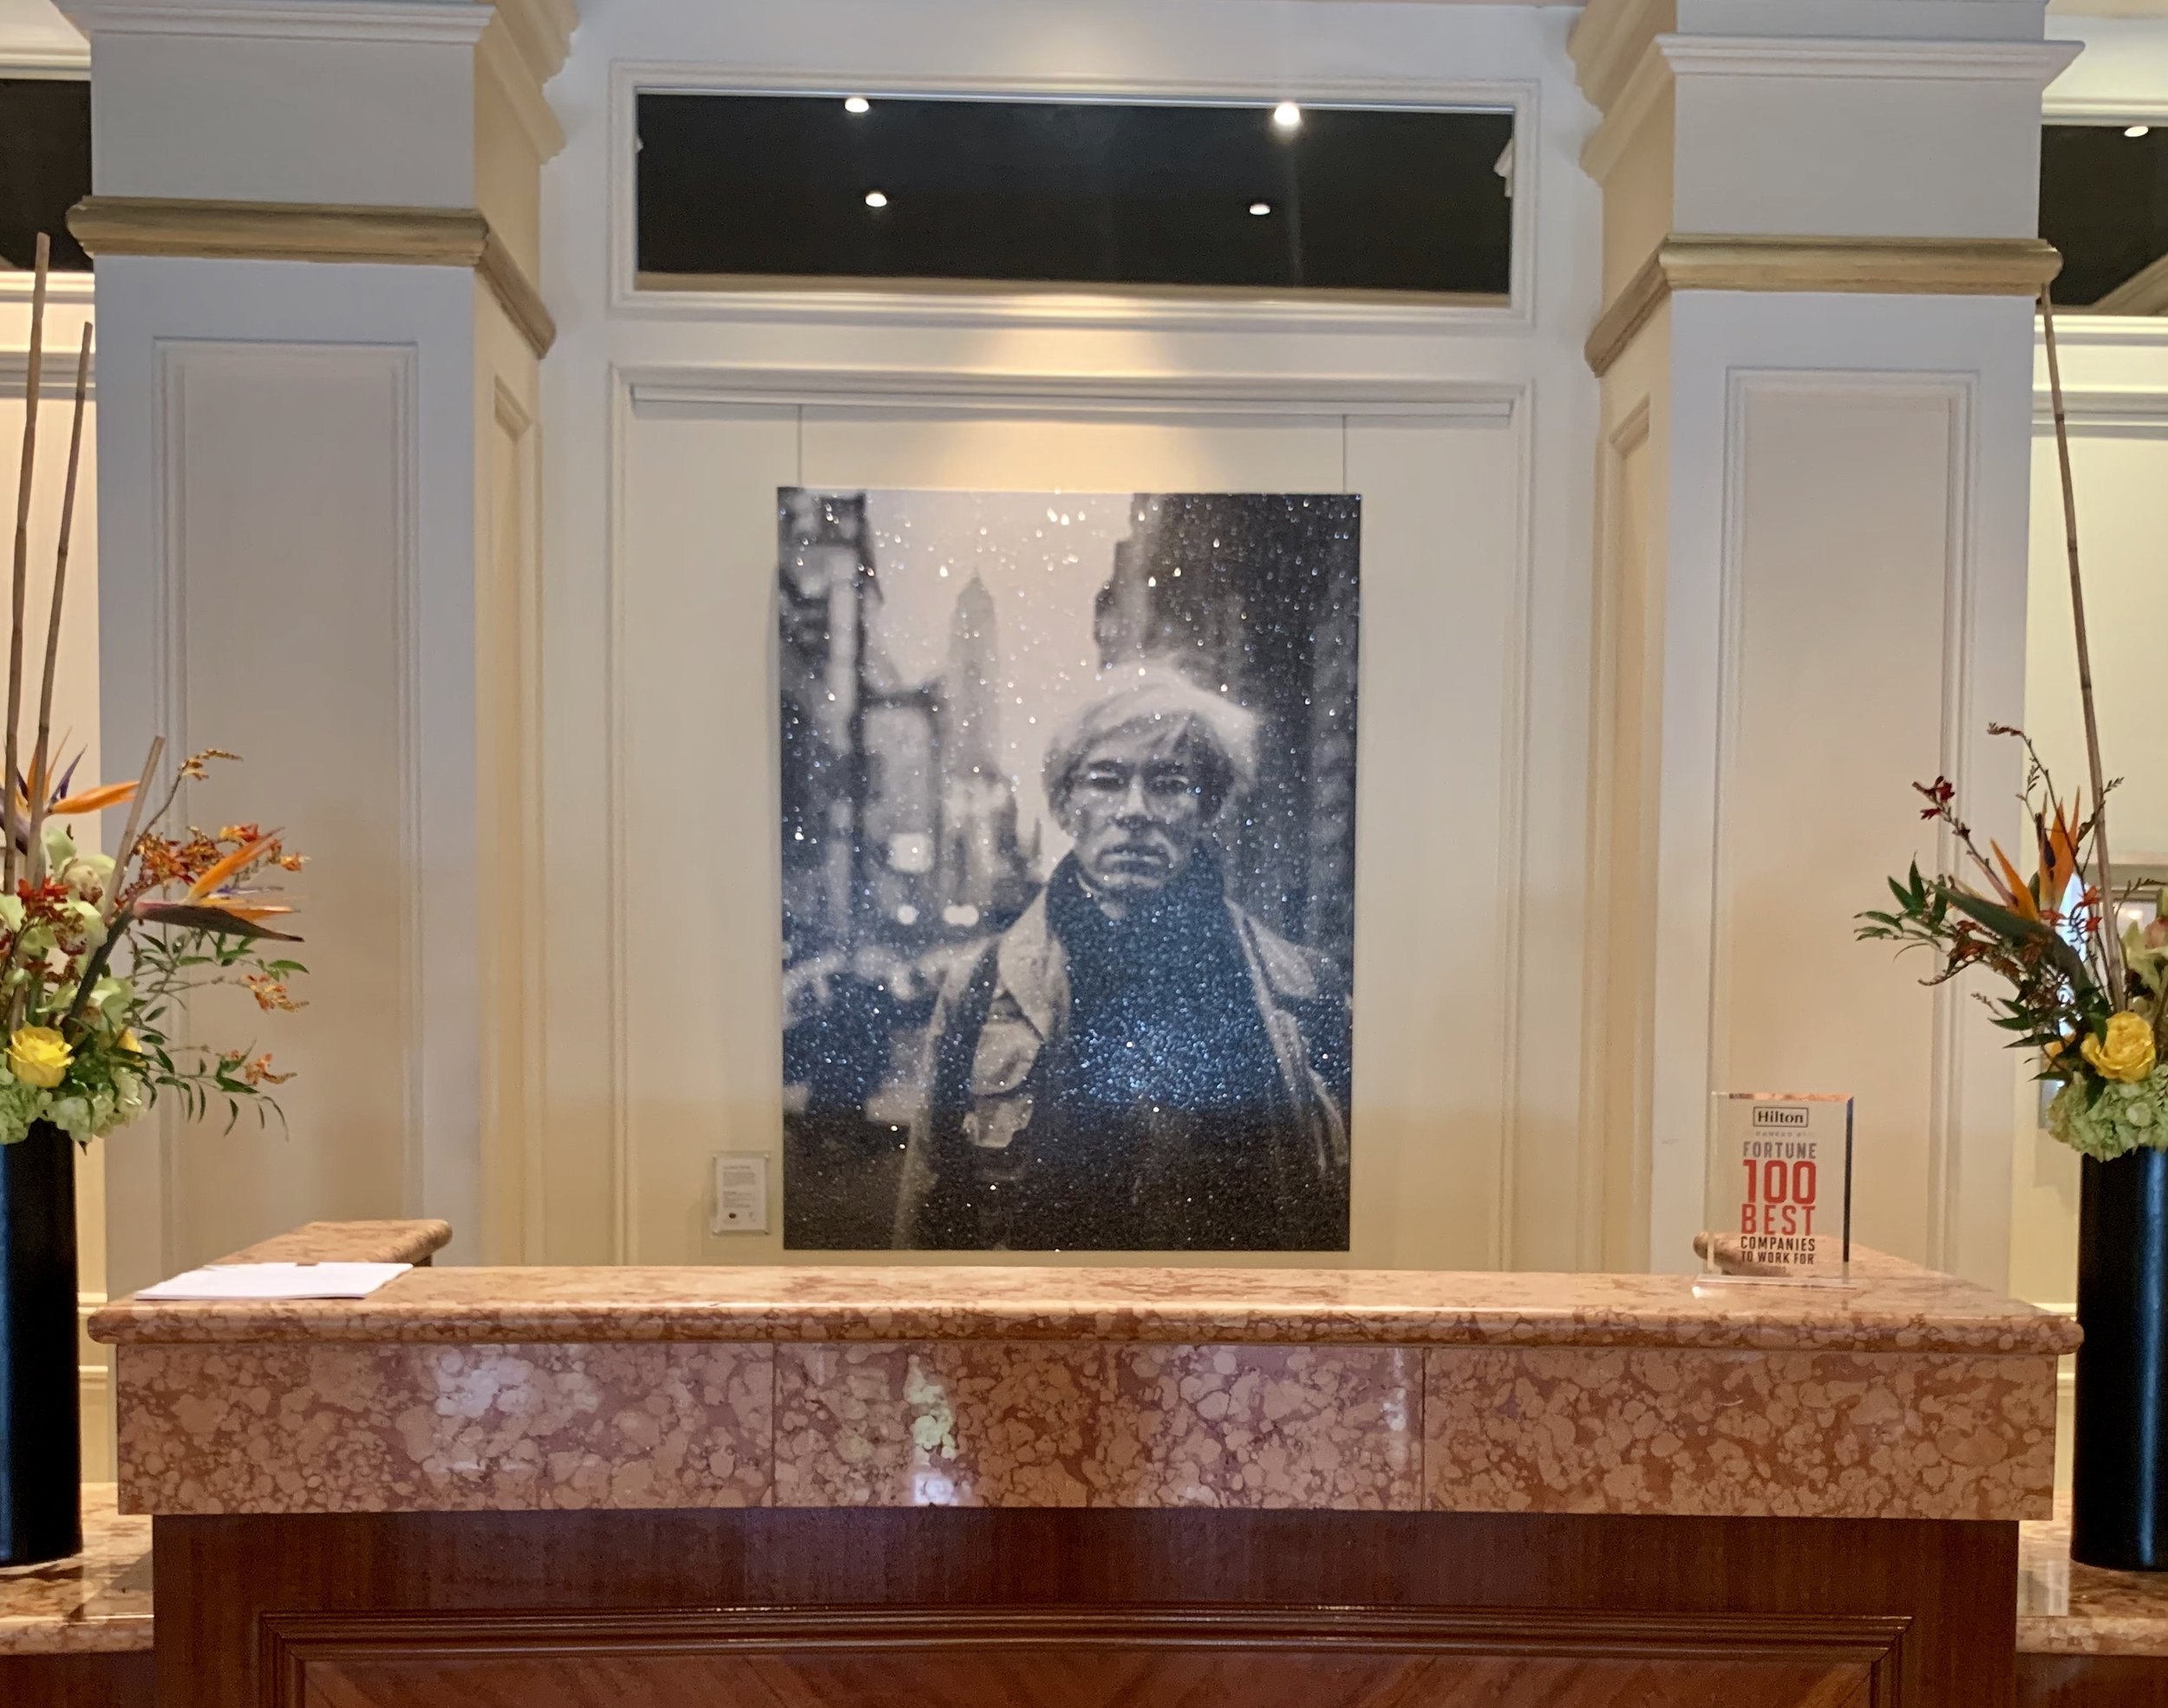 Andy Warhol diamond dusted portrait by Russell Young in the Conrad Indianapolis hotel lobby